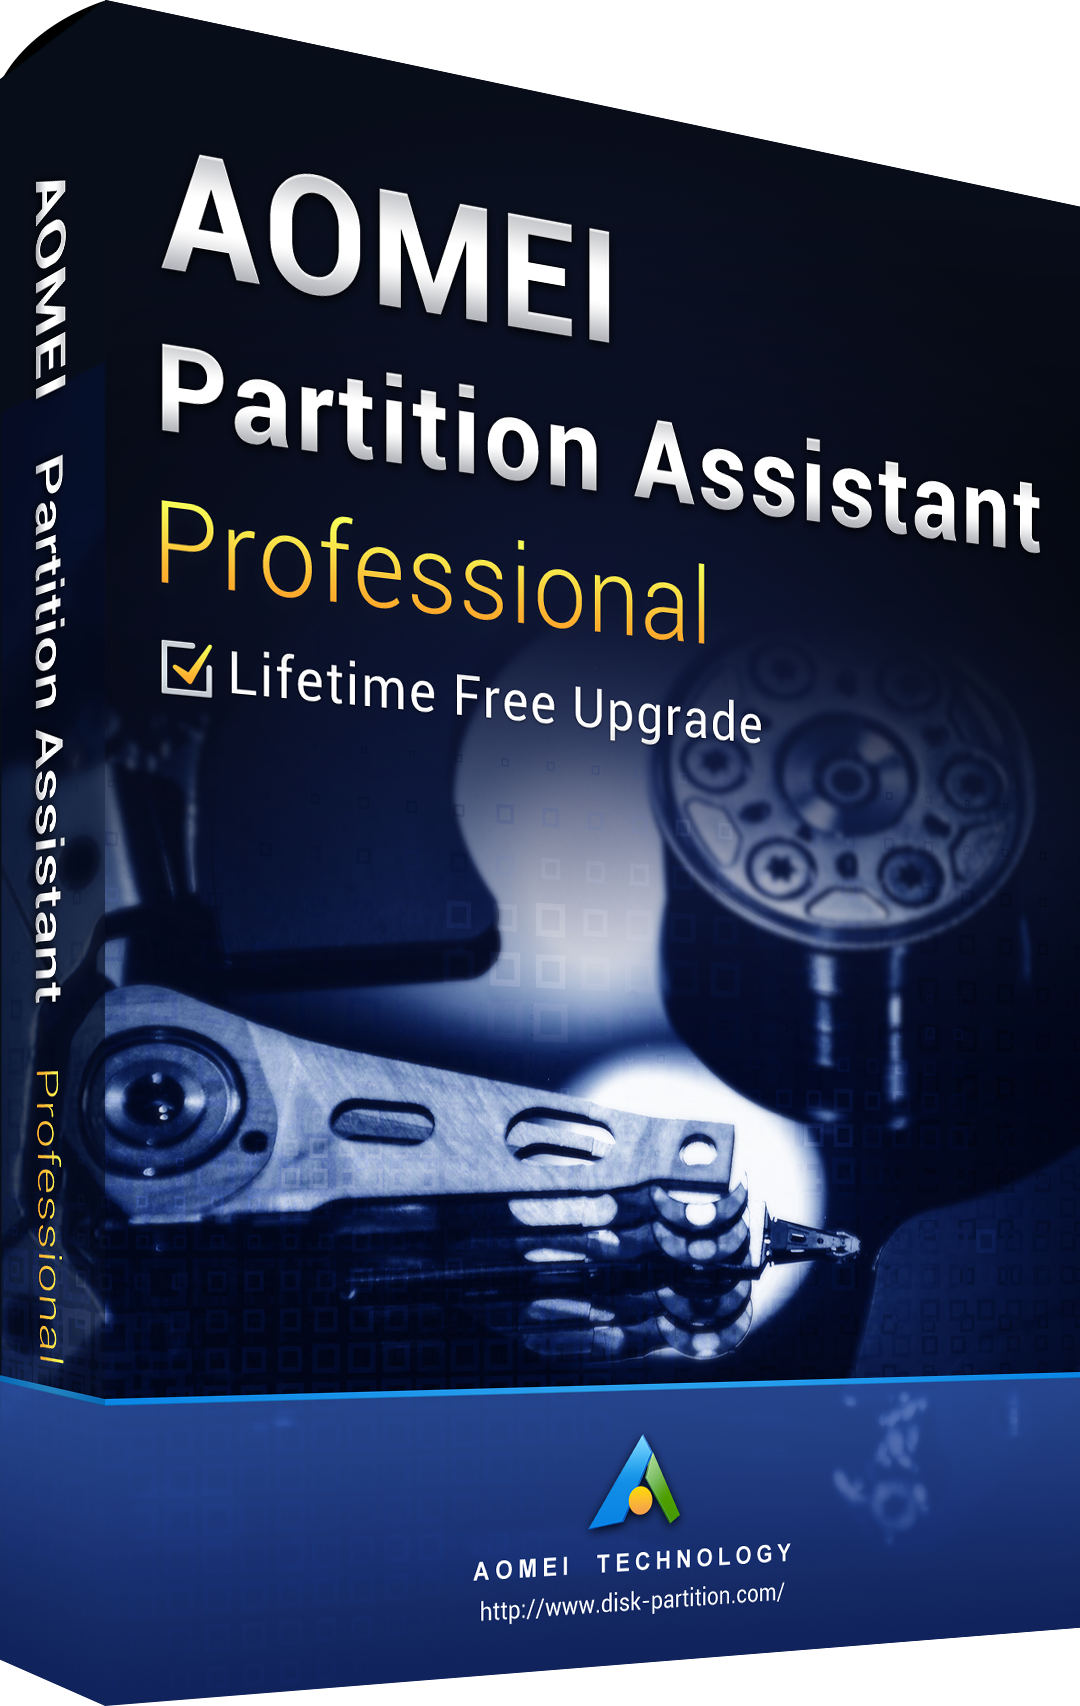 AOMEI Partition Assistant Professional + Free Lifetime Upgrades 8.8 Edition Key Global